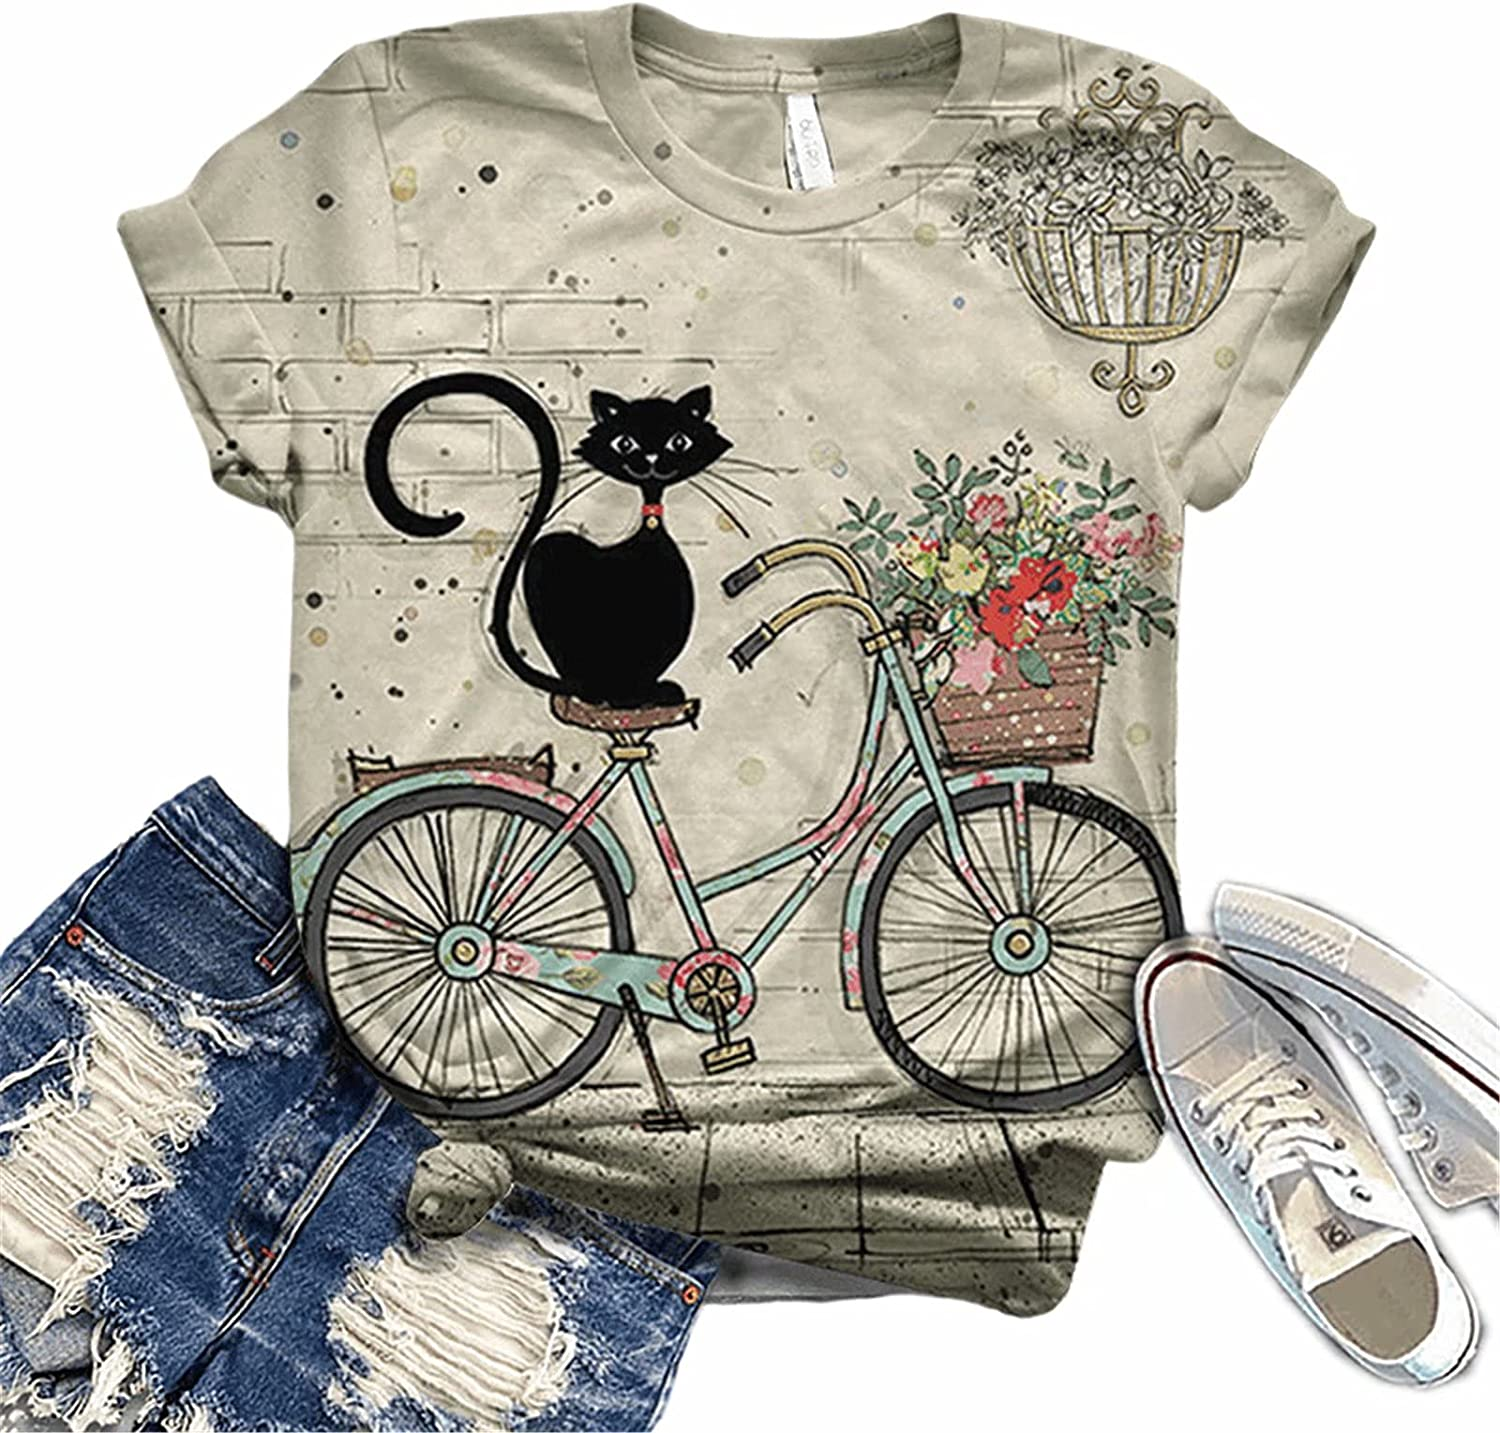 Hami House T Shirts for Women Graphic 3D Animal Printed Graphic Tees Shirts Short Sleeve O-Neck Casual Tops Blouse